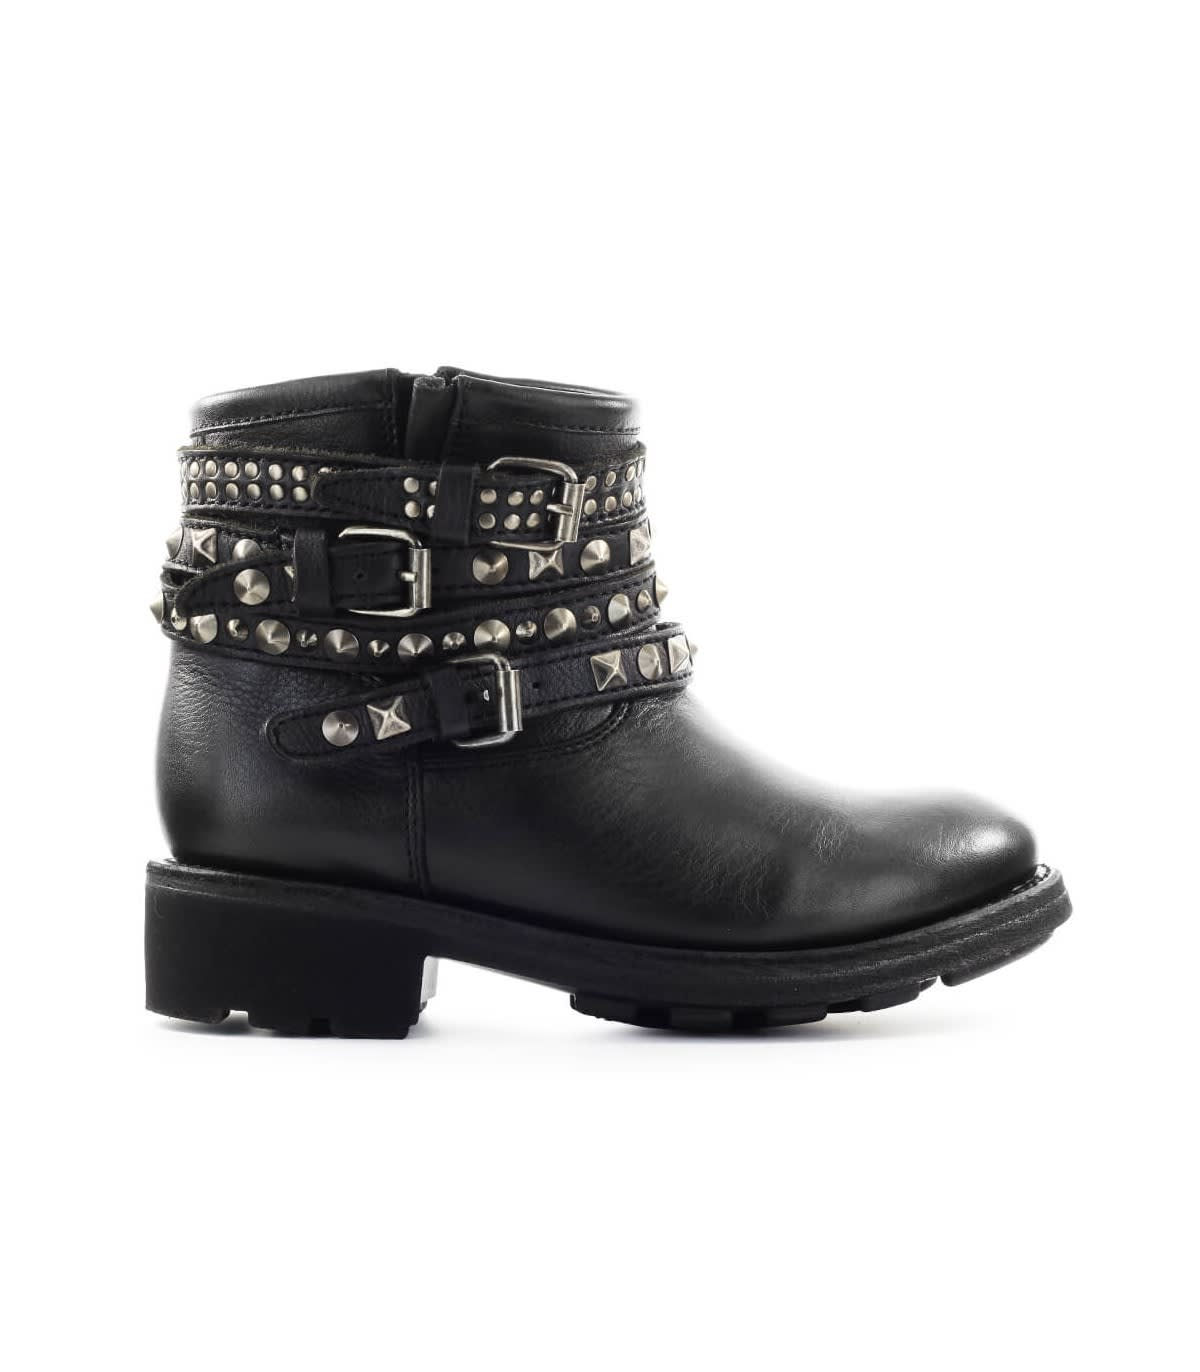 Ash Leathers TATUM BLACK NAPPA LEATHER ANKLE BOOT